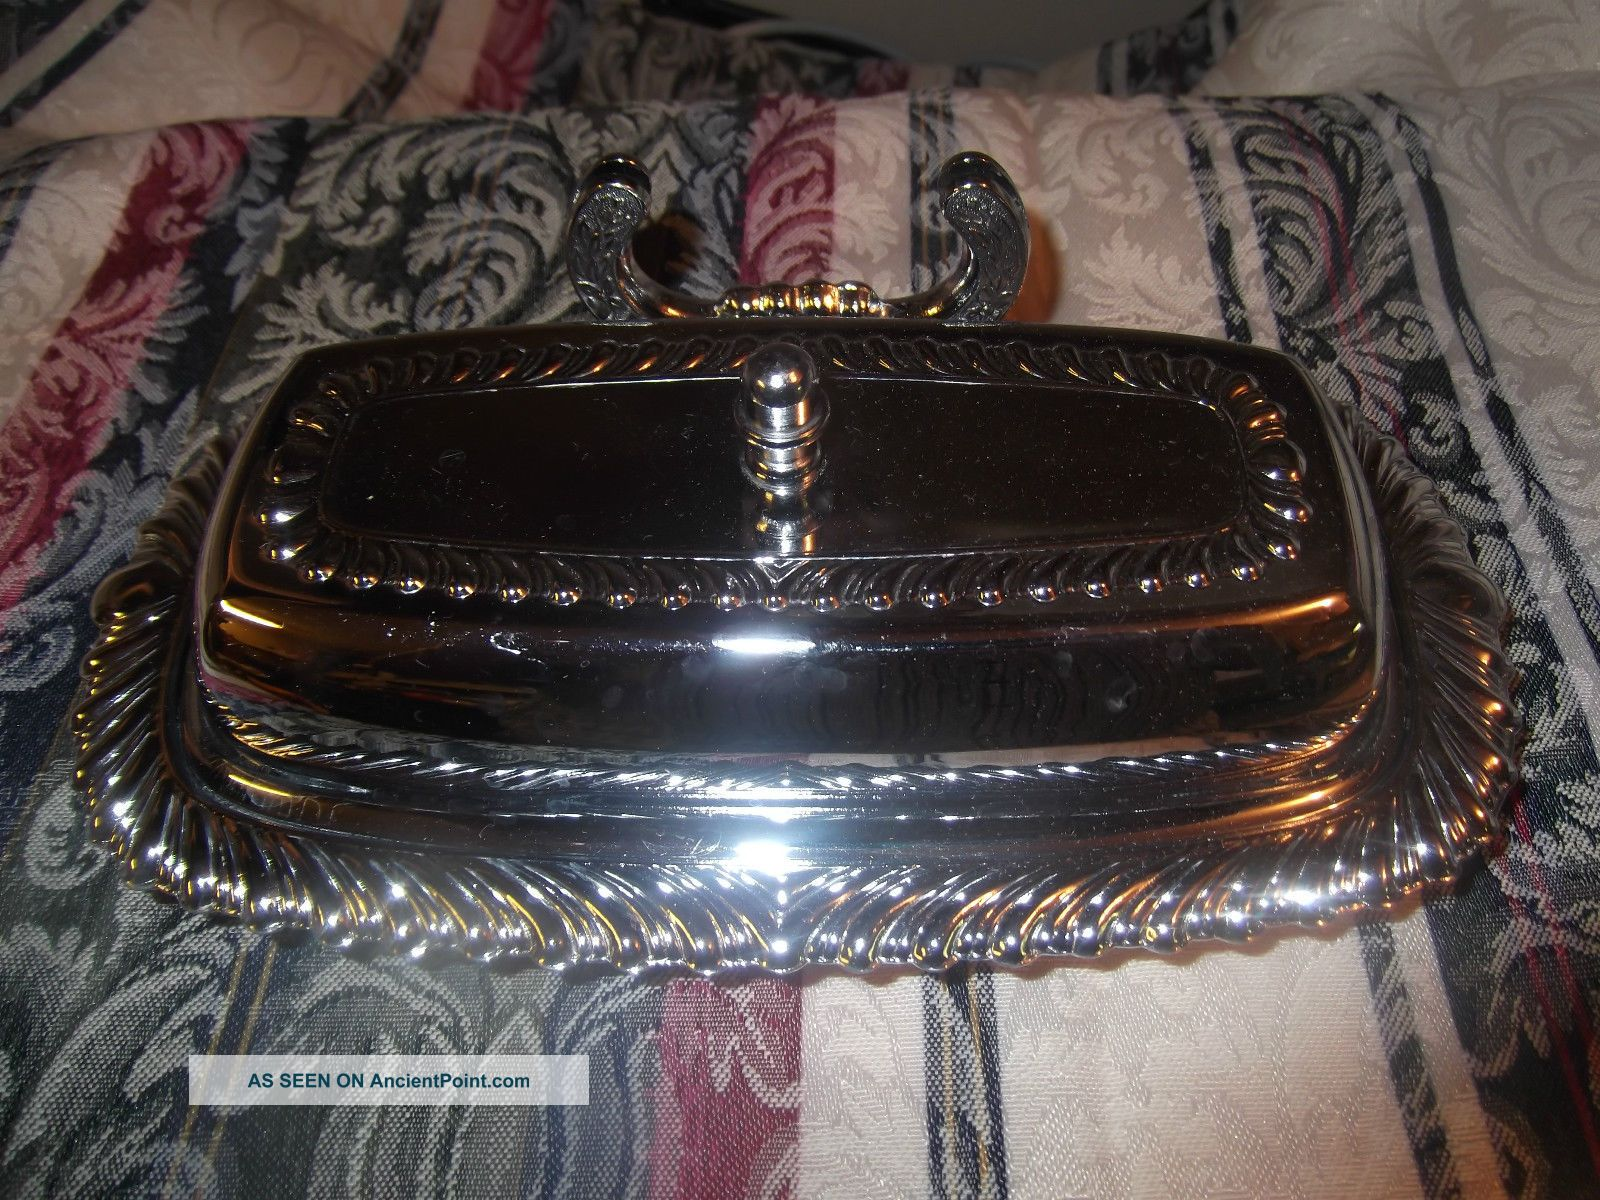 Vintage Silverplate Irvinware Butter Dish With Glass Insert Butter Dishes photo